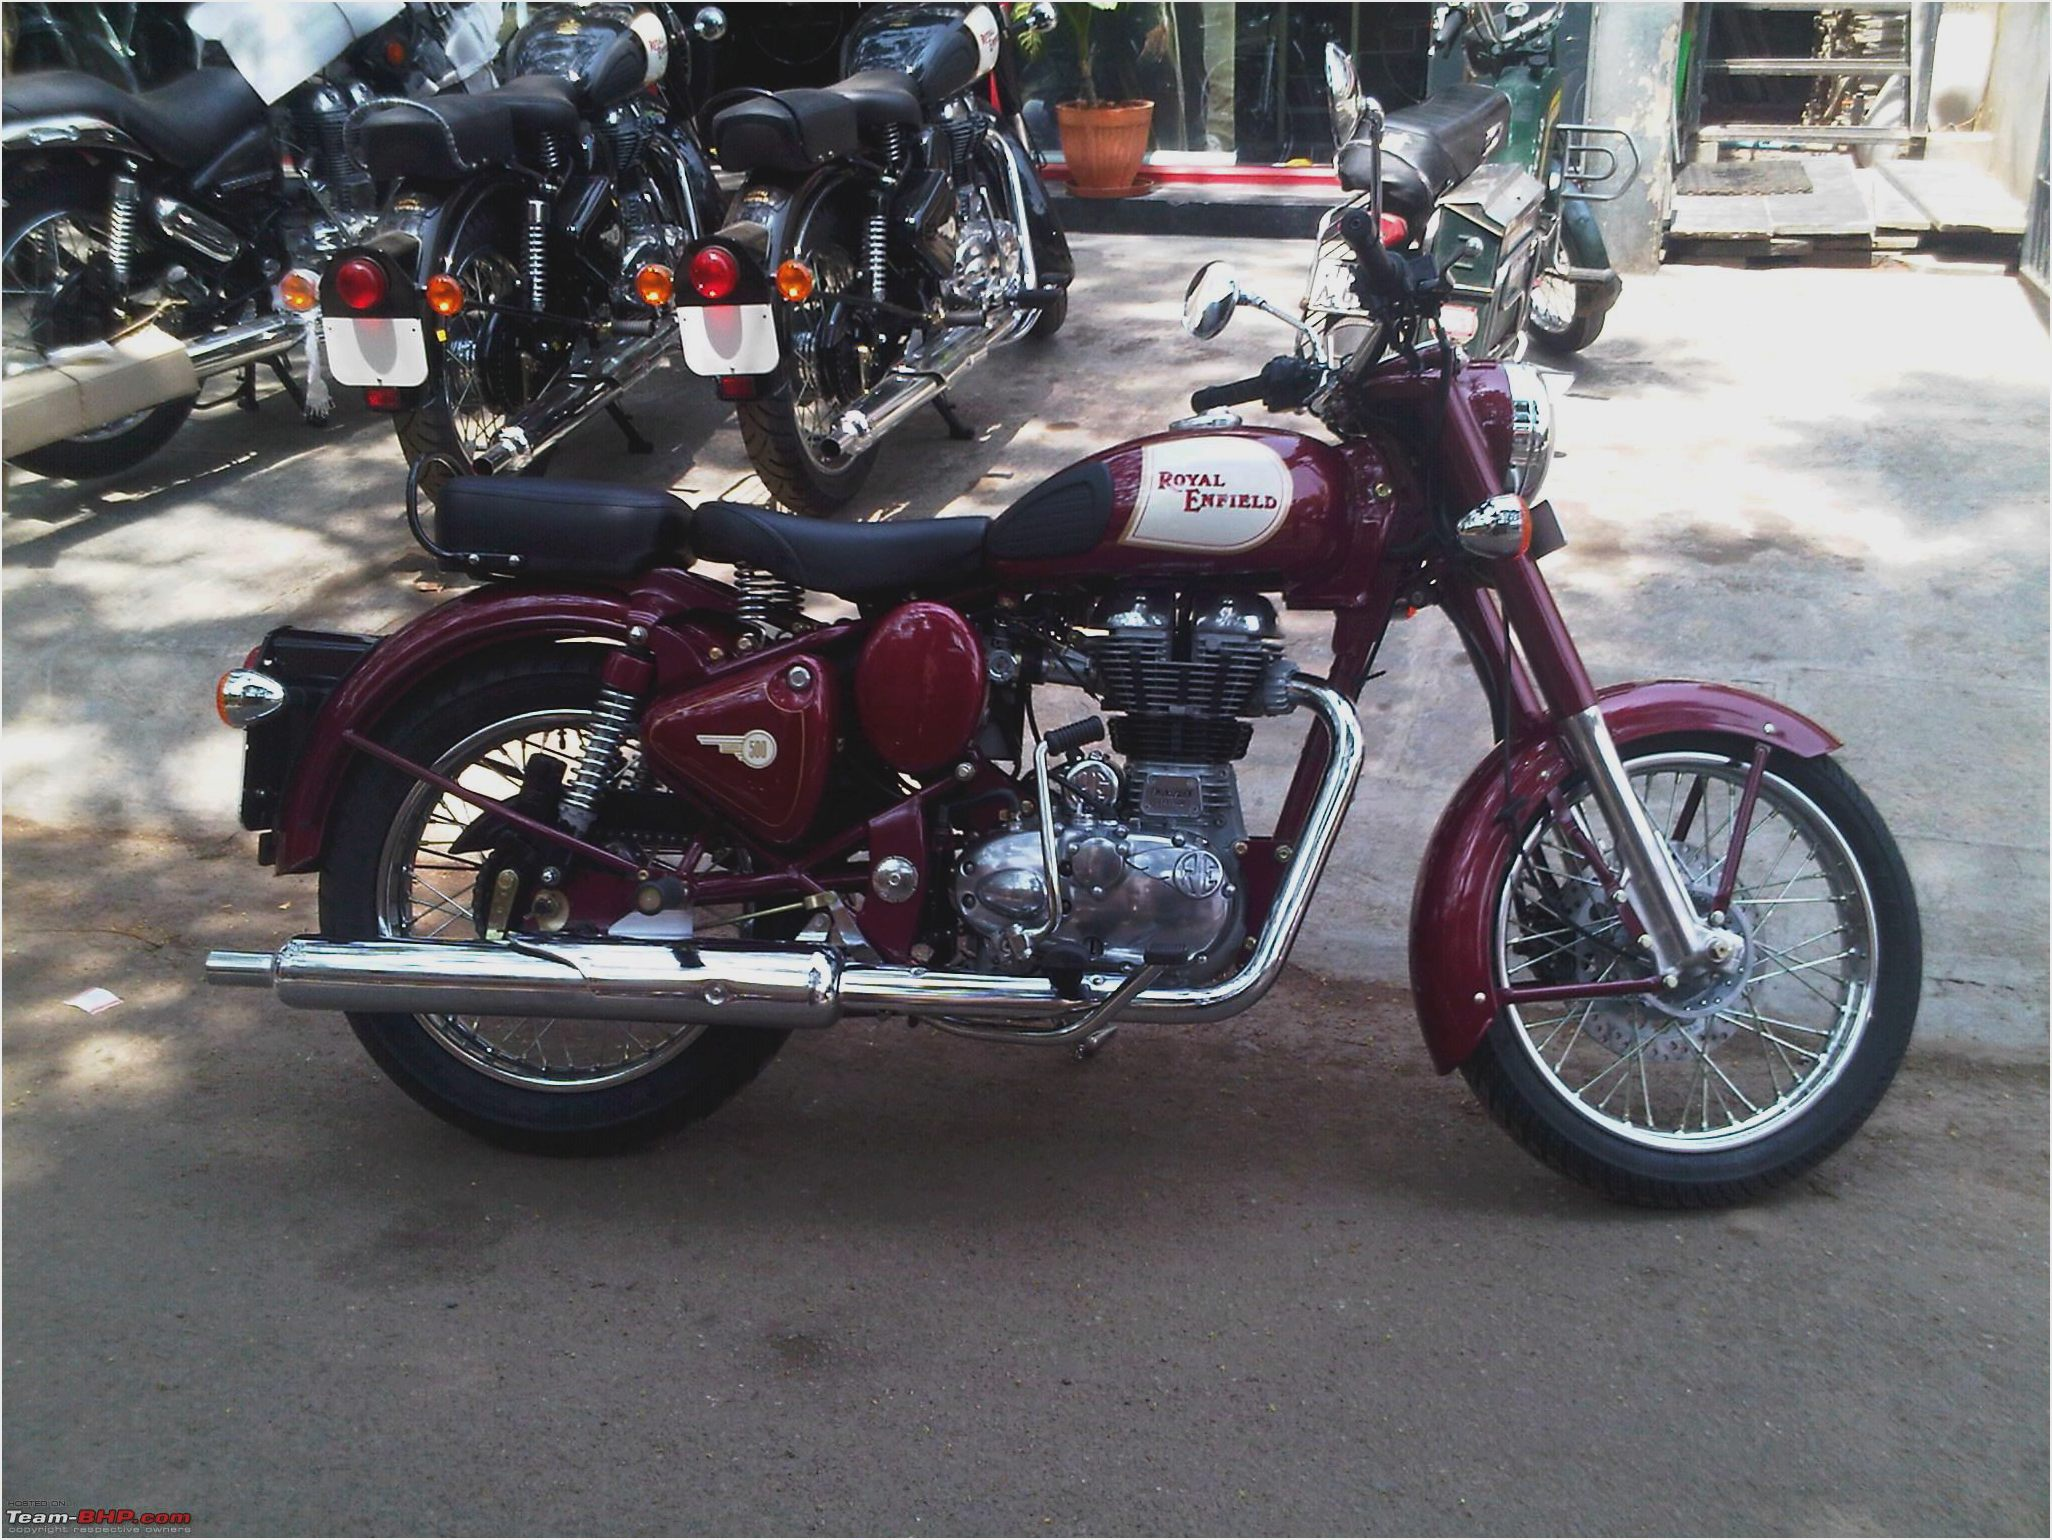 Royal Enfield Bullet 350 Classic 2007 images #123971